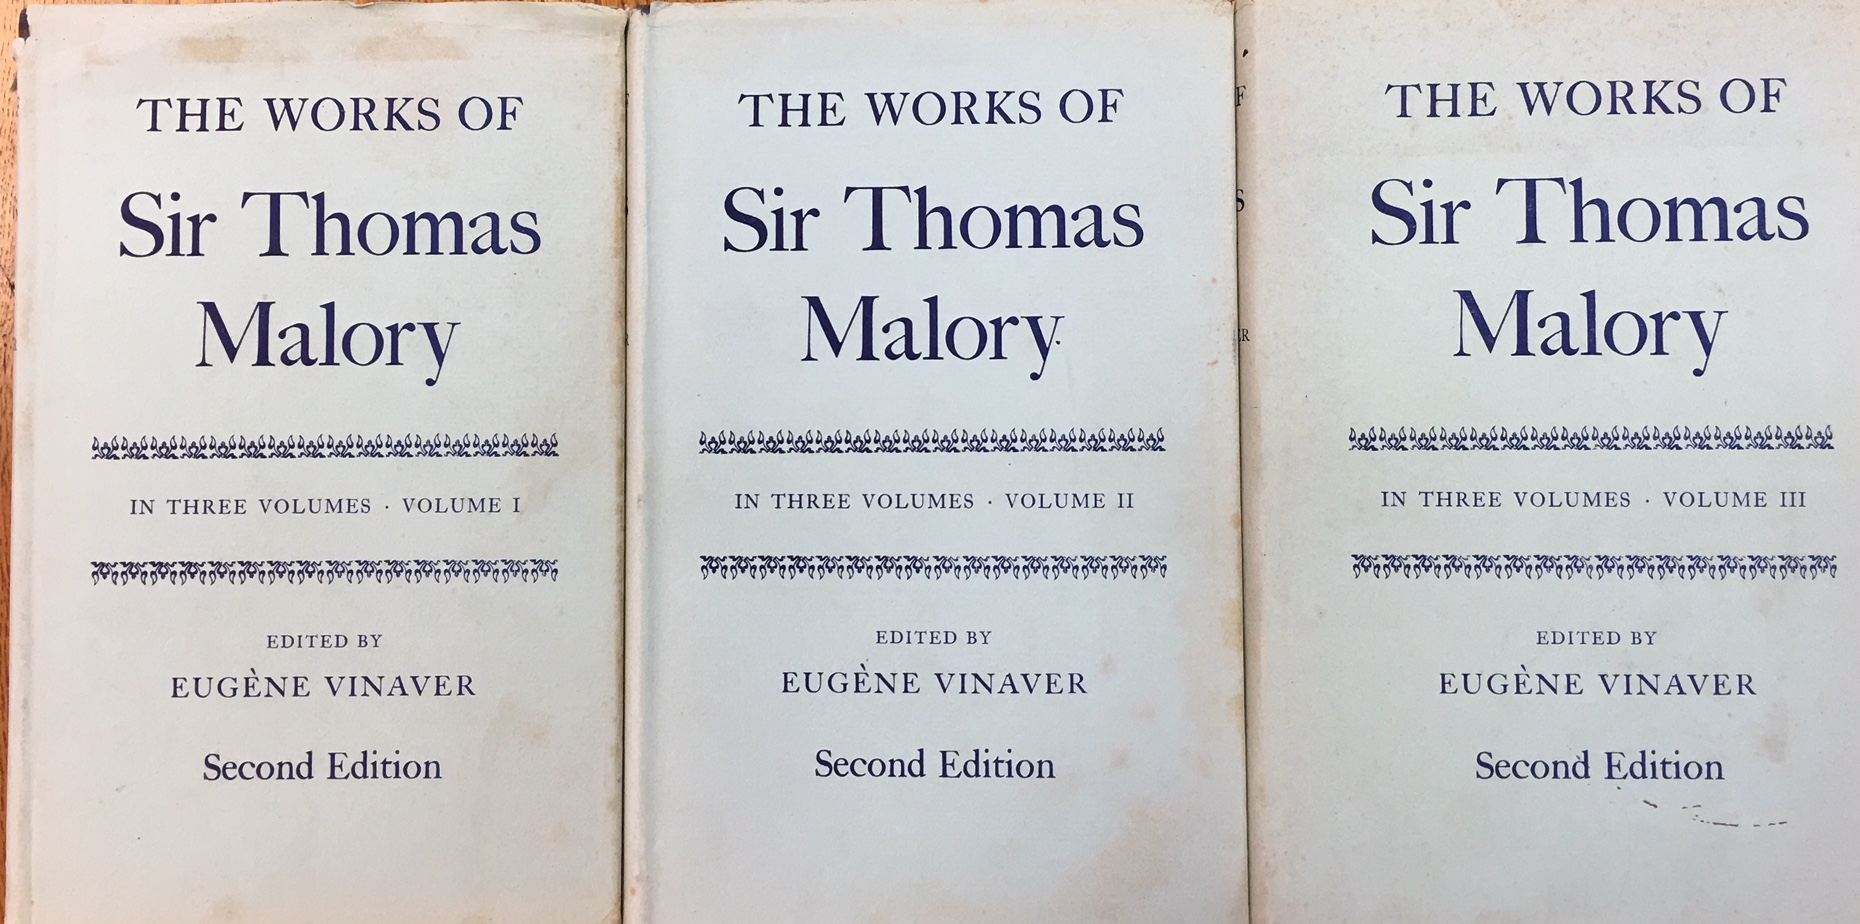 Image for The Works of Sir Thomas Malory. Second Edition - 2nd Edition (3 Volume Set)